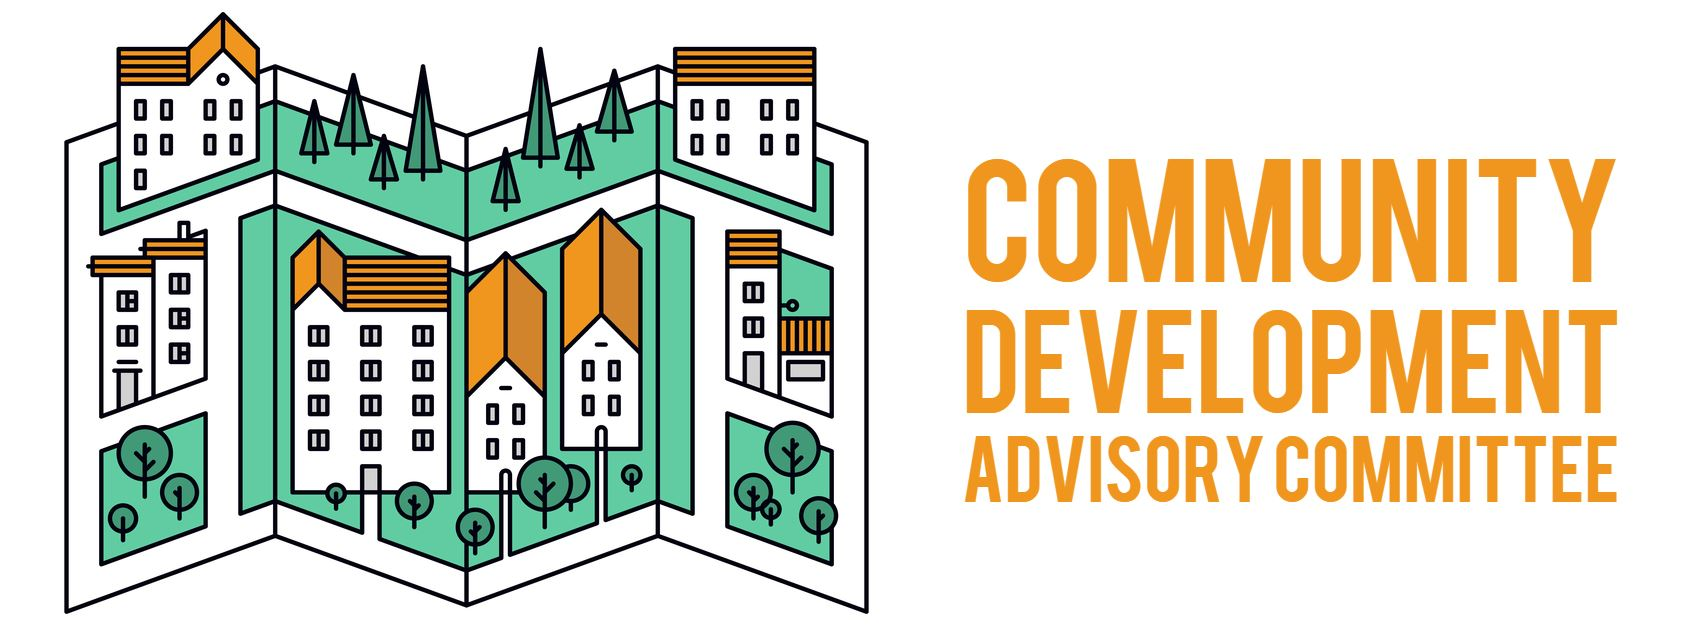 Community Development Advisory Committee graphic of map